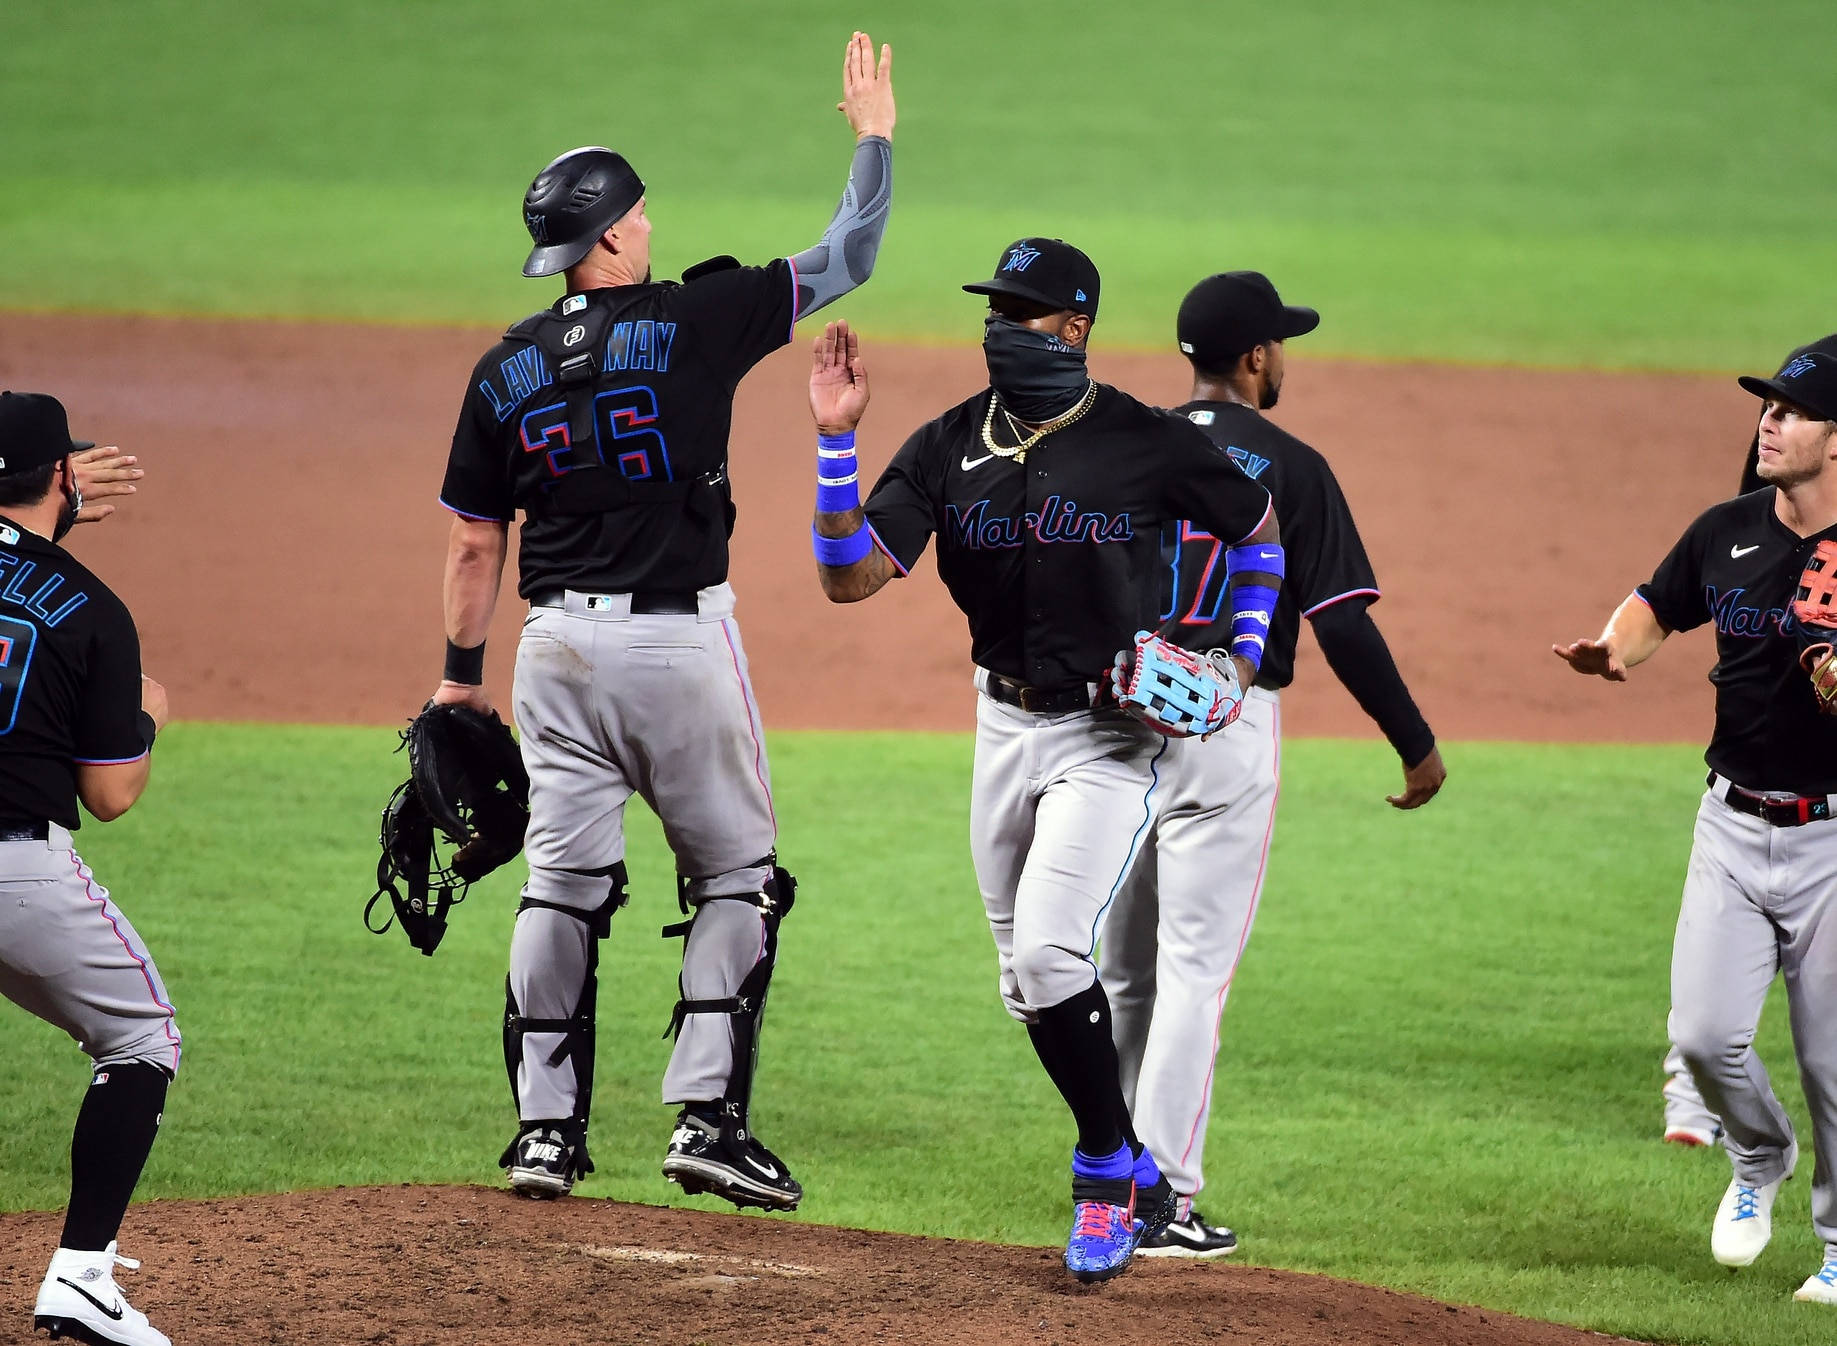 Miami Marlins are now off to their best start in franchise history